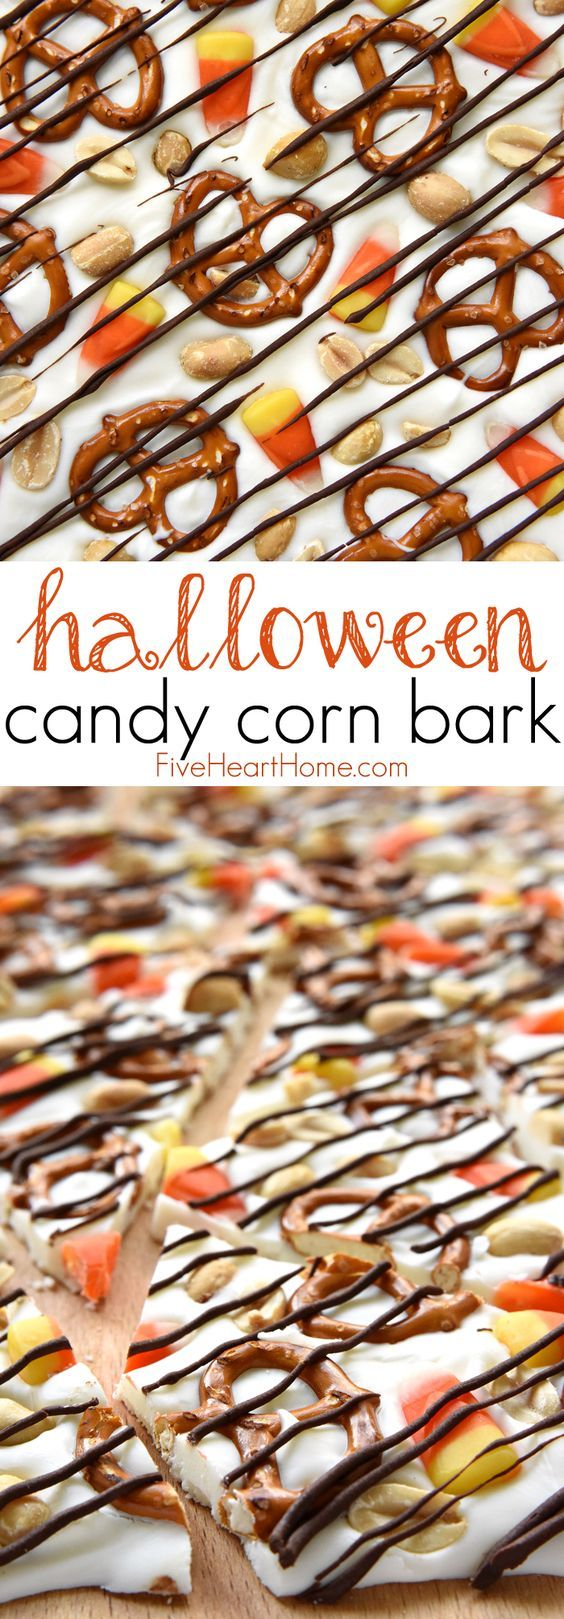 Halloween Candy Corn Bark ~ this sweet and salty homemade candy recipe features white chocolate studded with candy corn, pretzels, and peanuts, then drizzled with semisweet chocolate for a fun and tasty Halloween treat! | FiveHeartHome.com